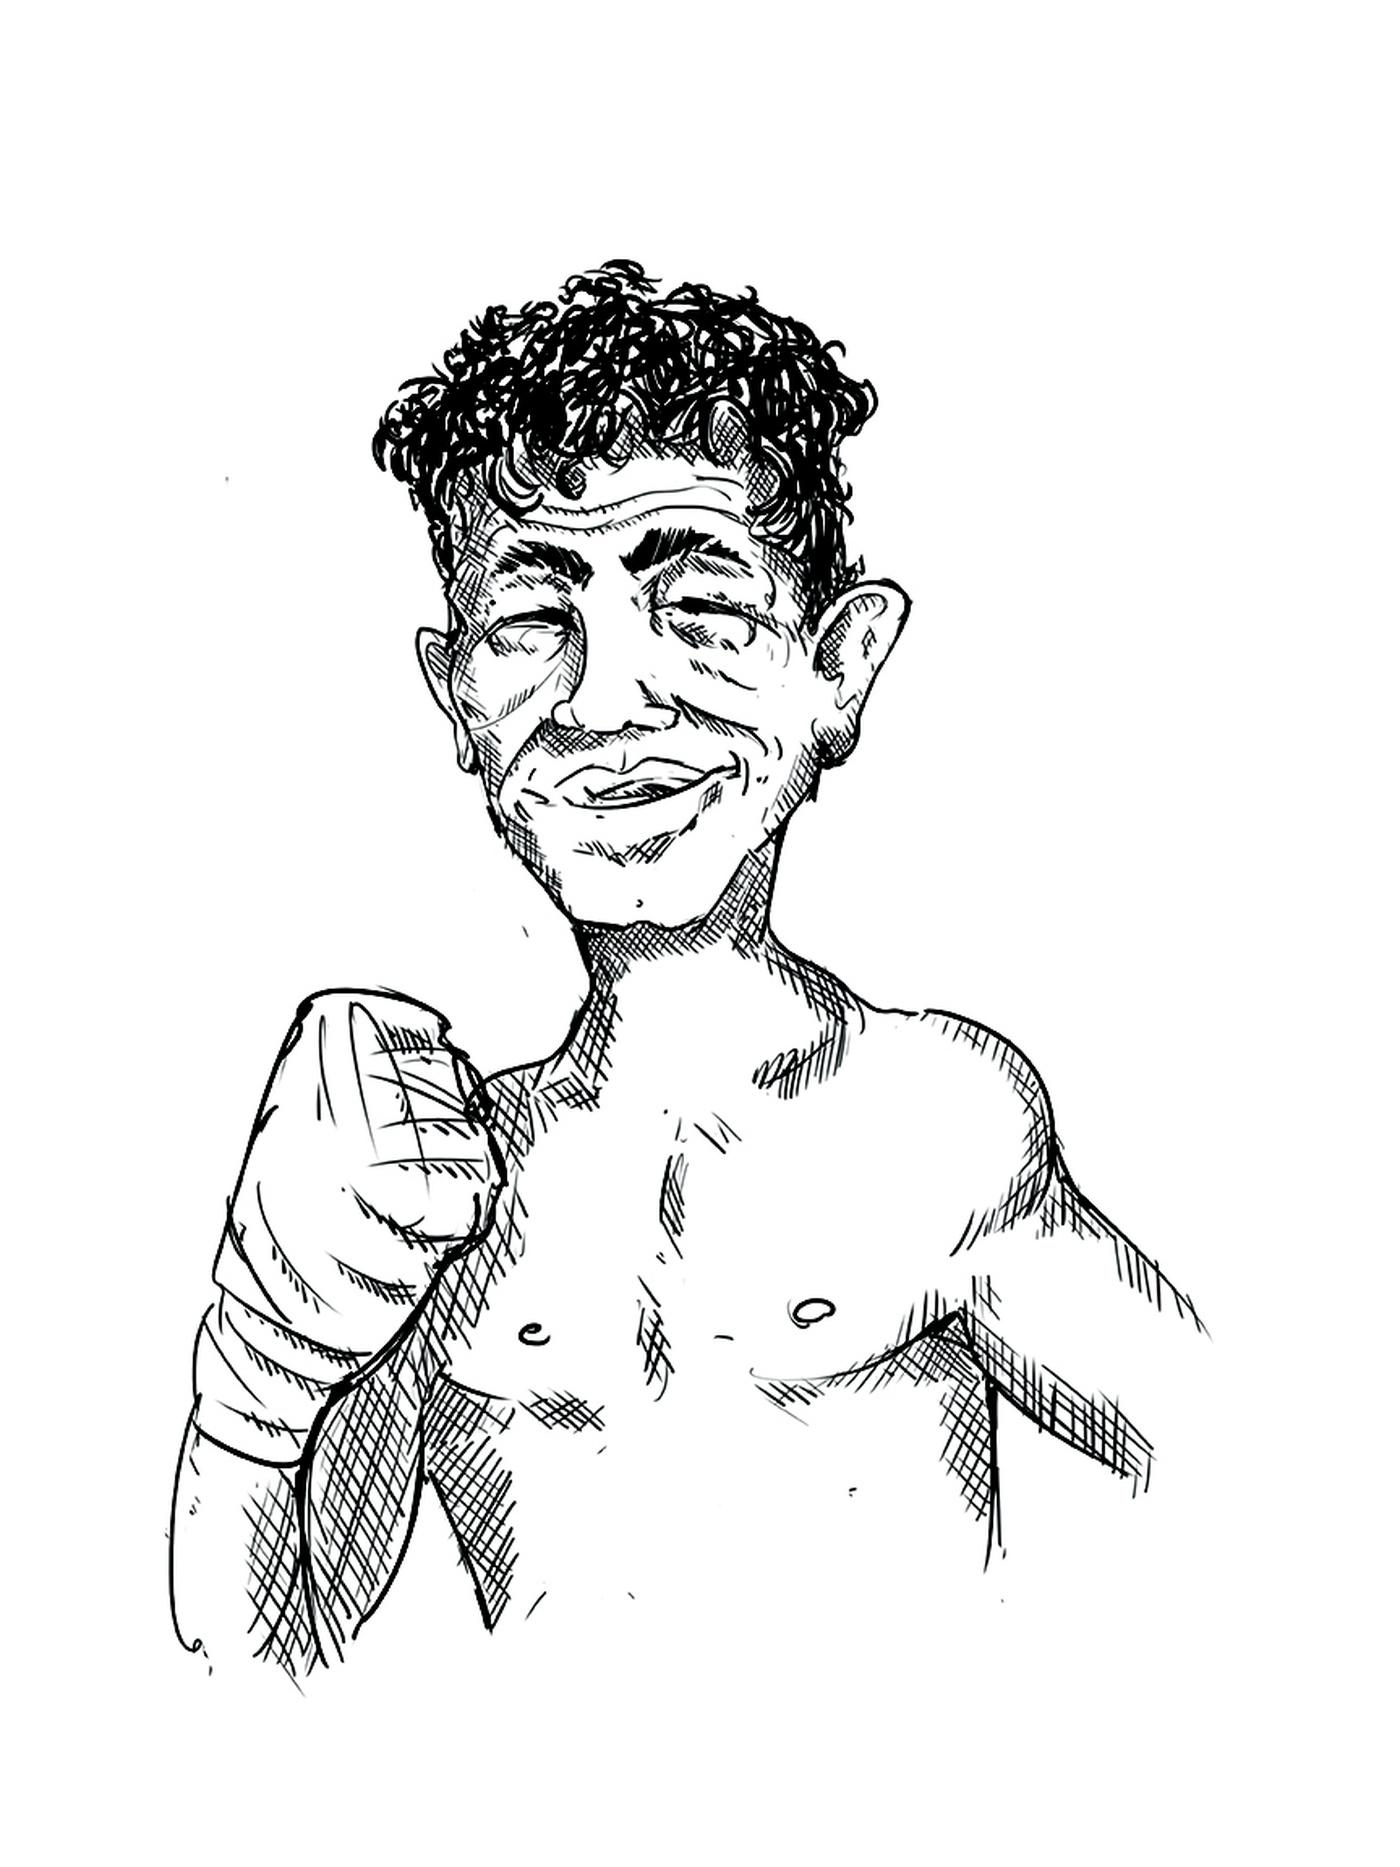 Marc Tremblay - Arturo_Gatti